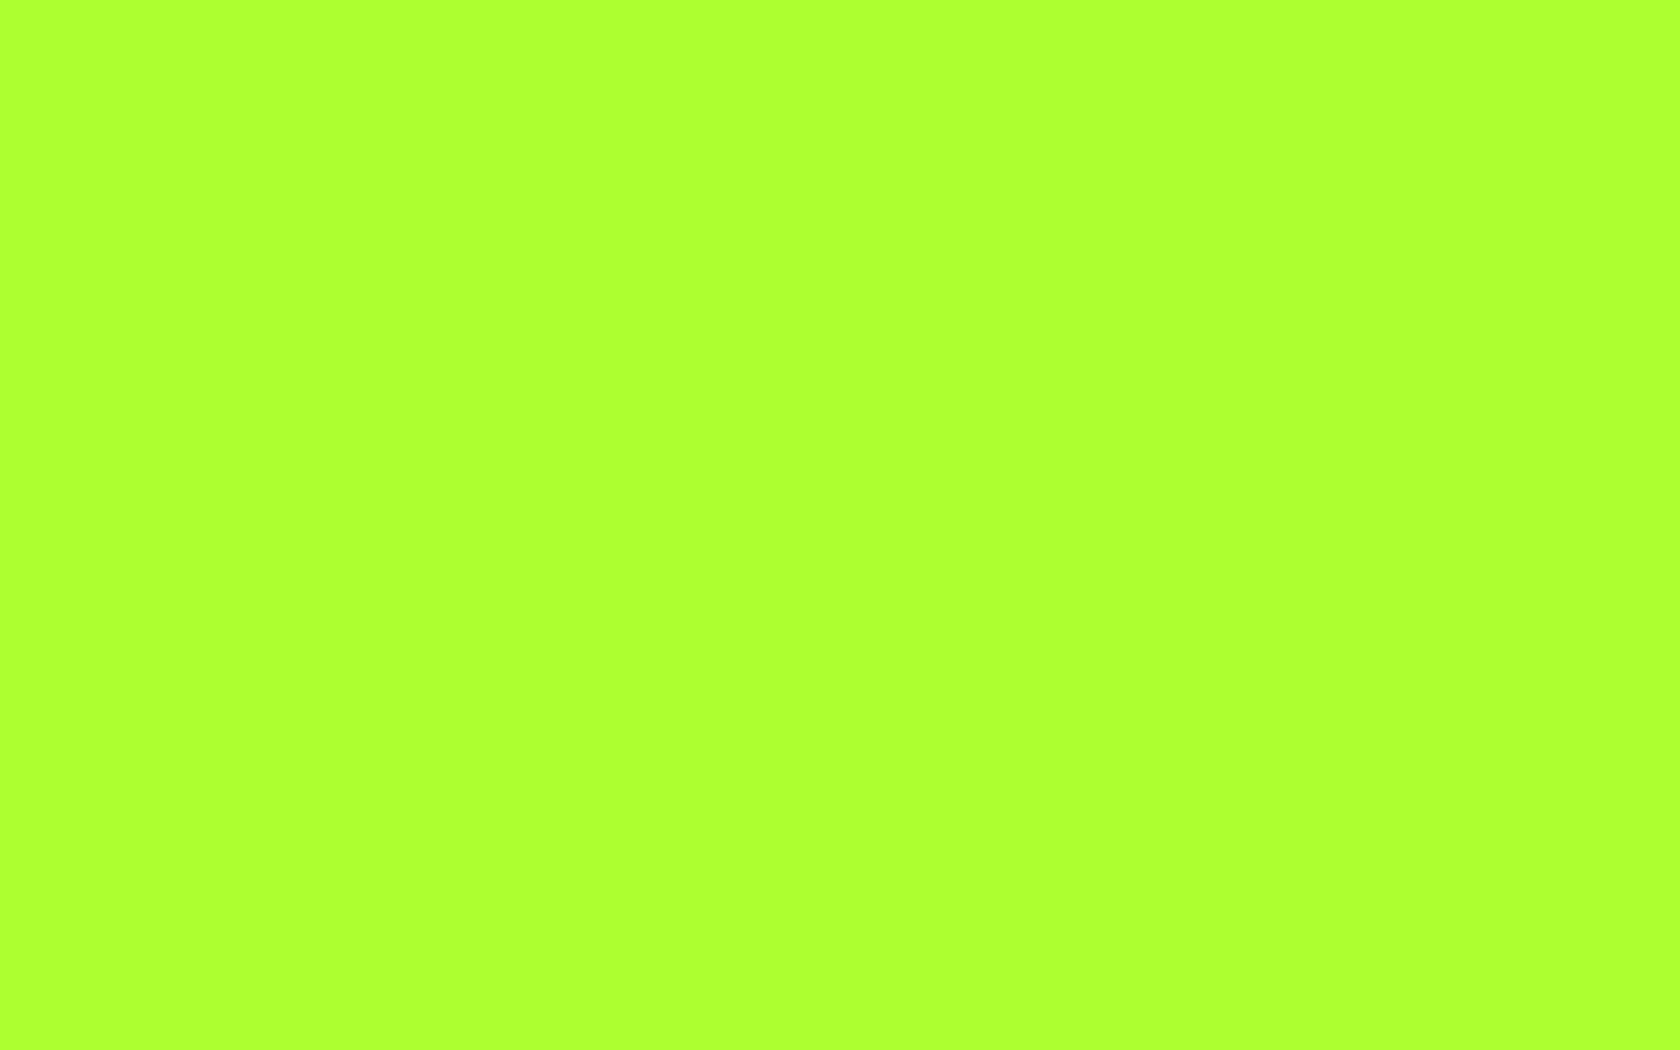 1680x1050 Green-yellow Solid Color Background